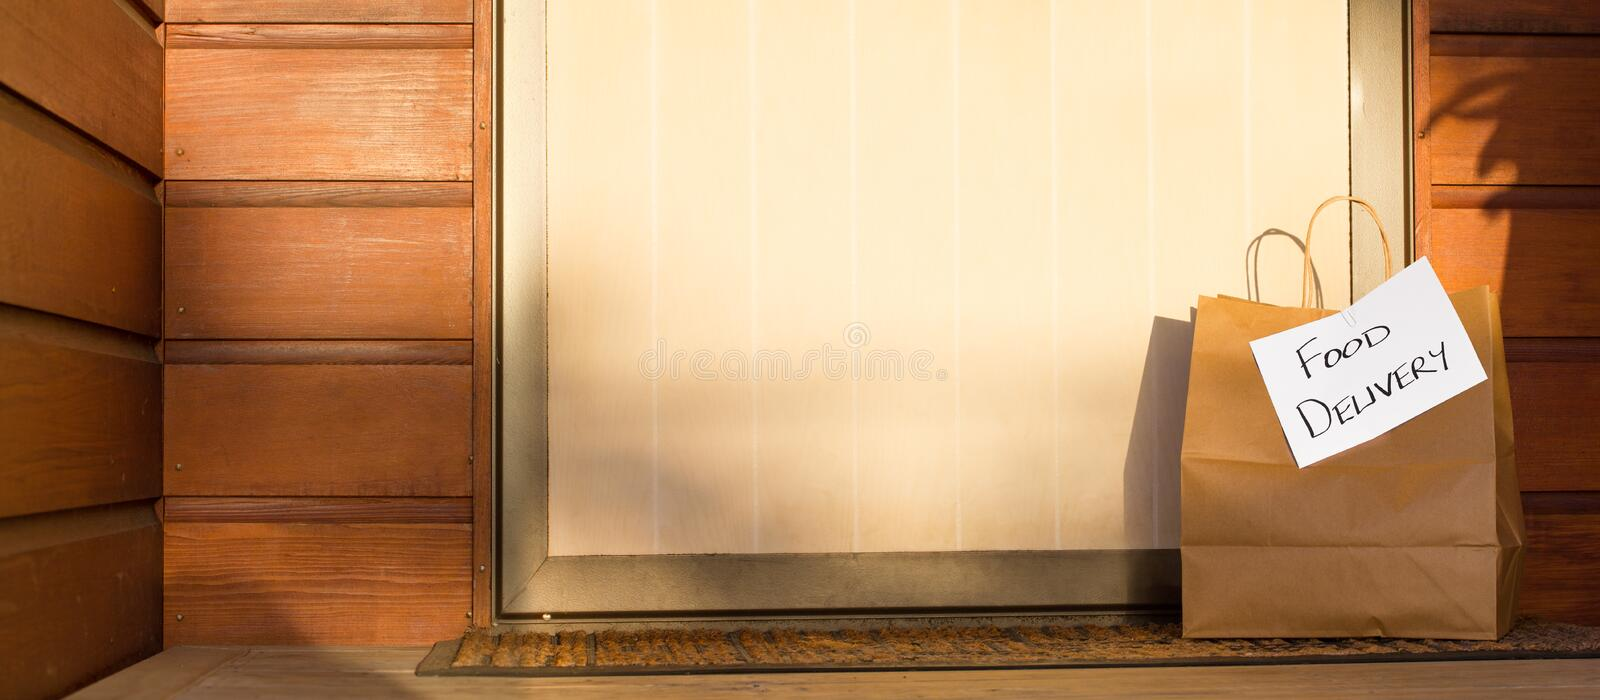 Food delivery in paper bag at door of home banner royalty free stock photos